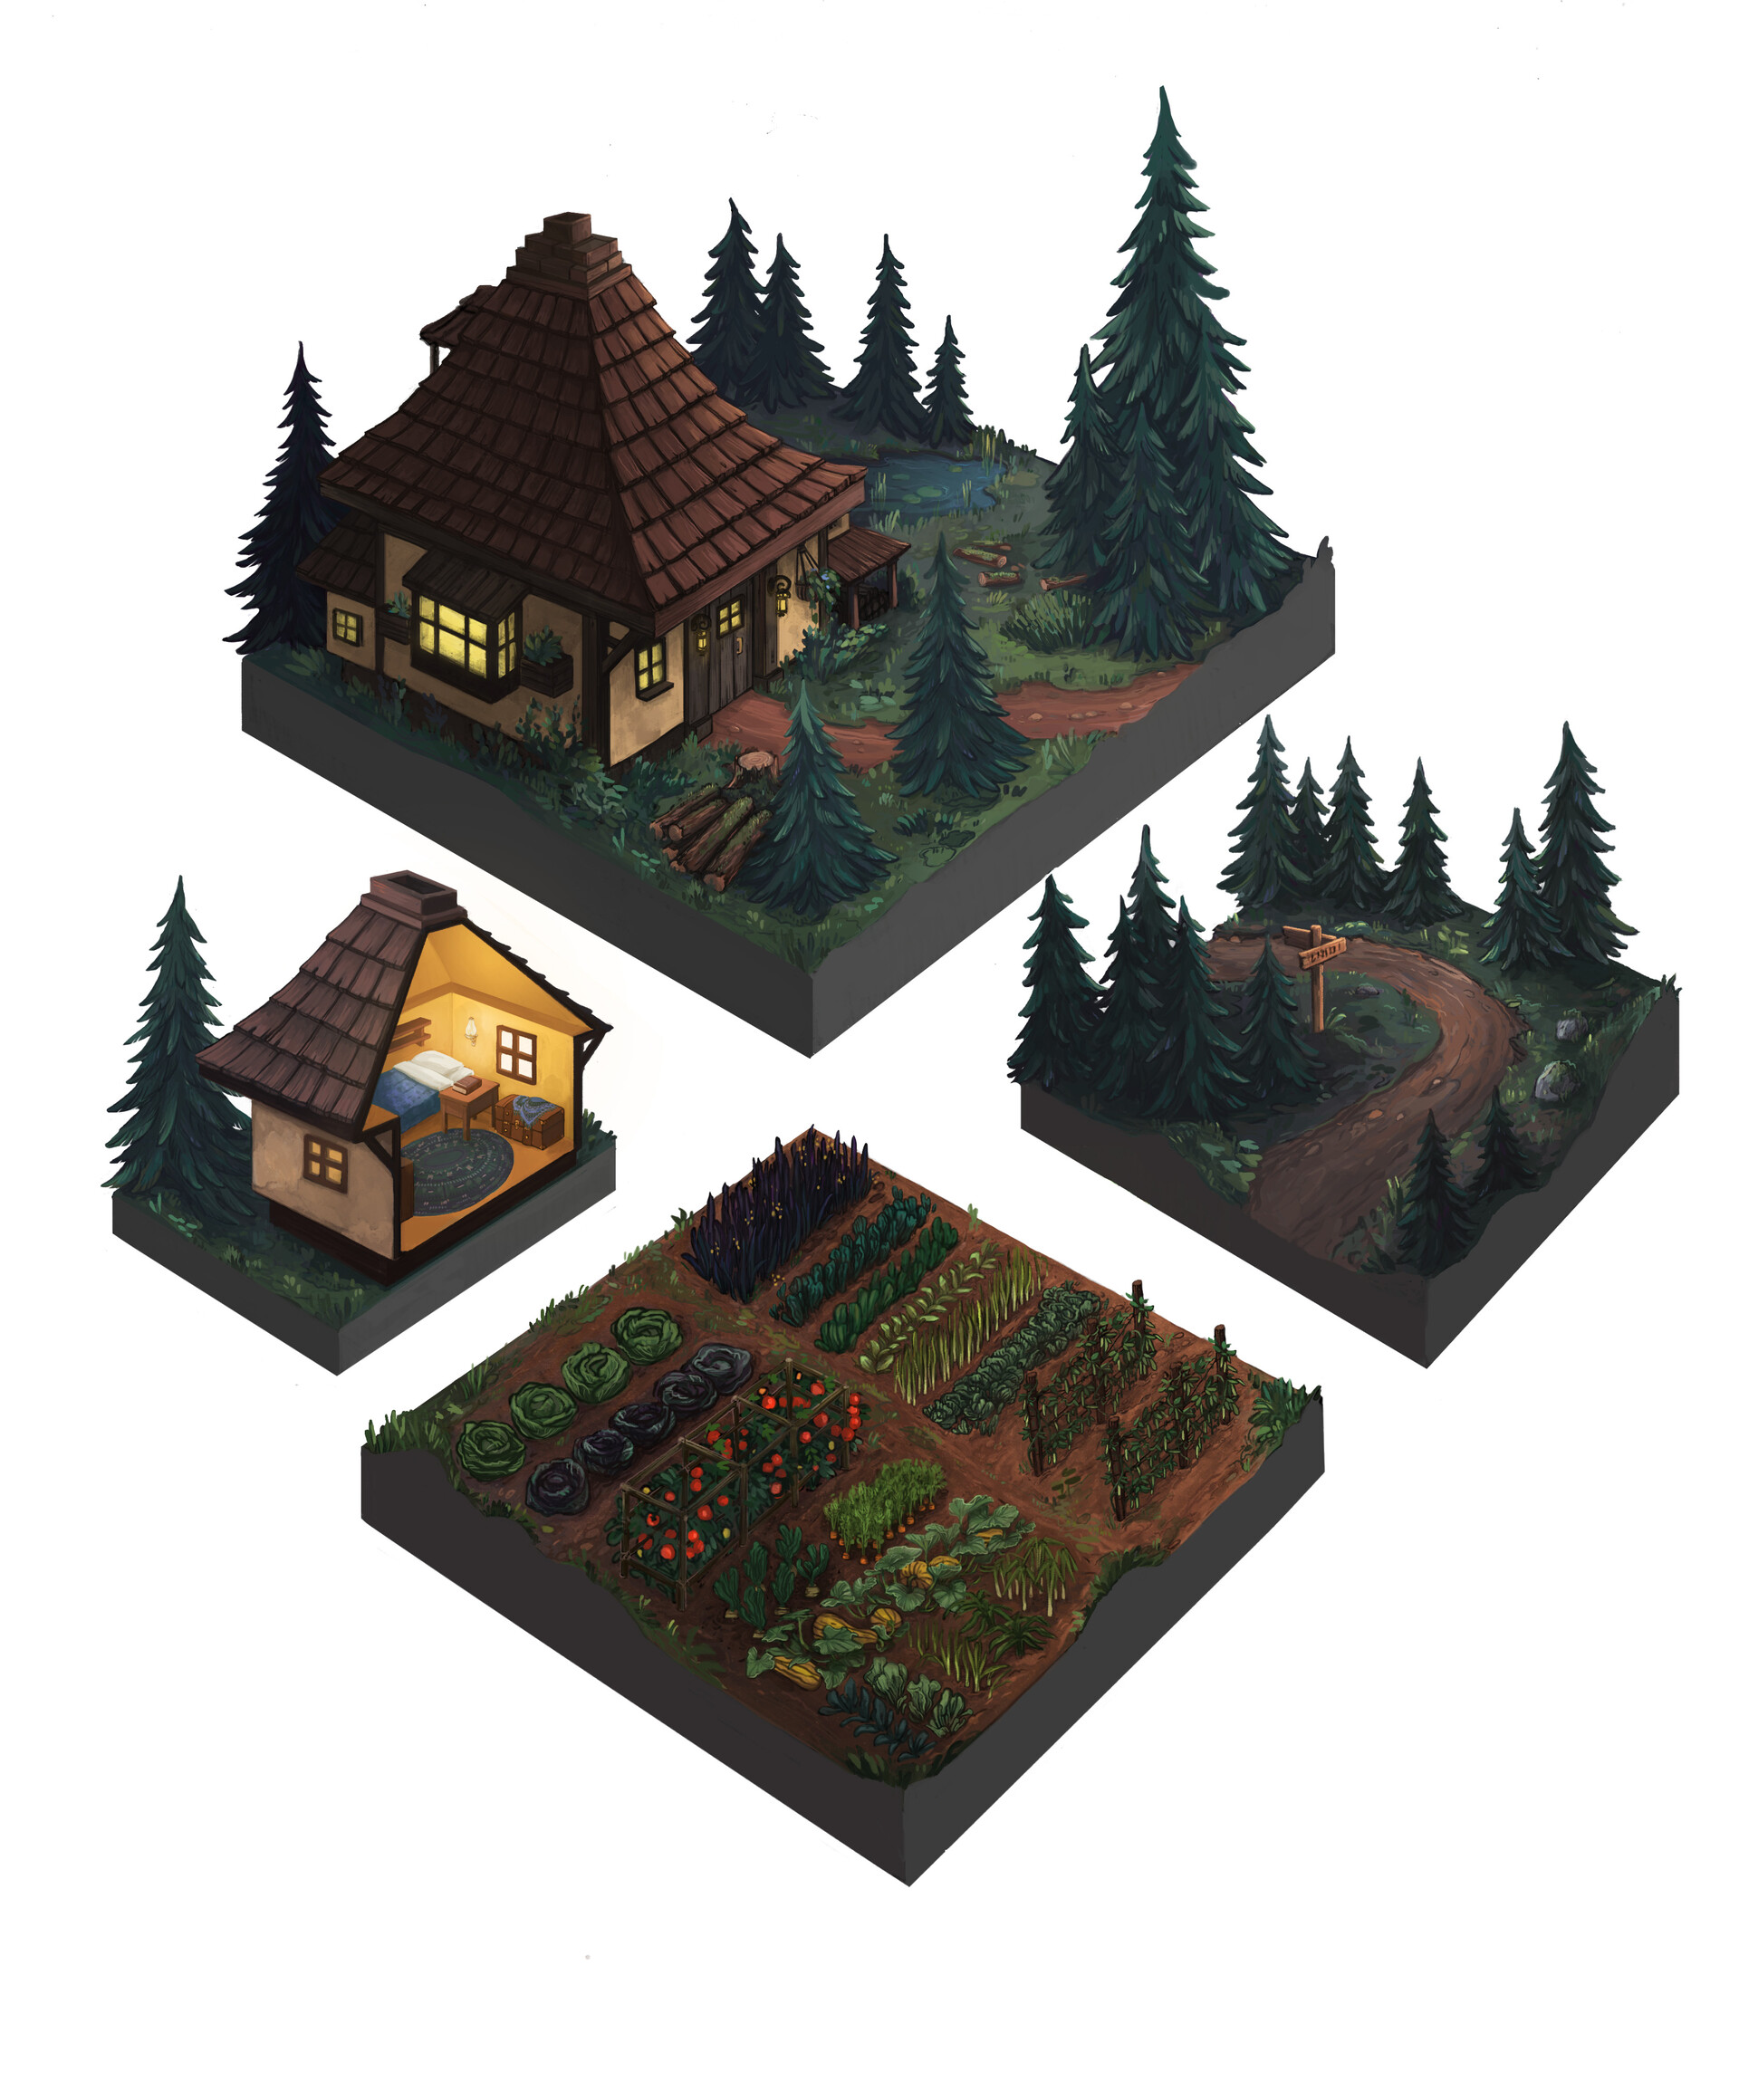 witches house, garden and forest path